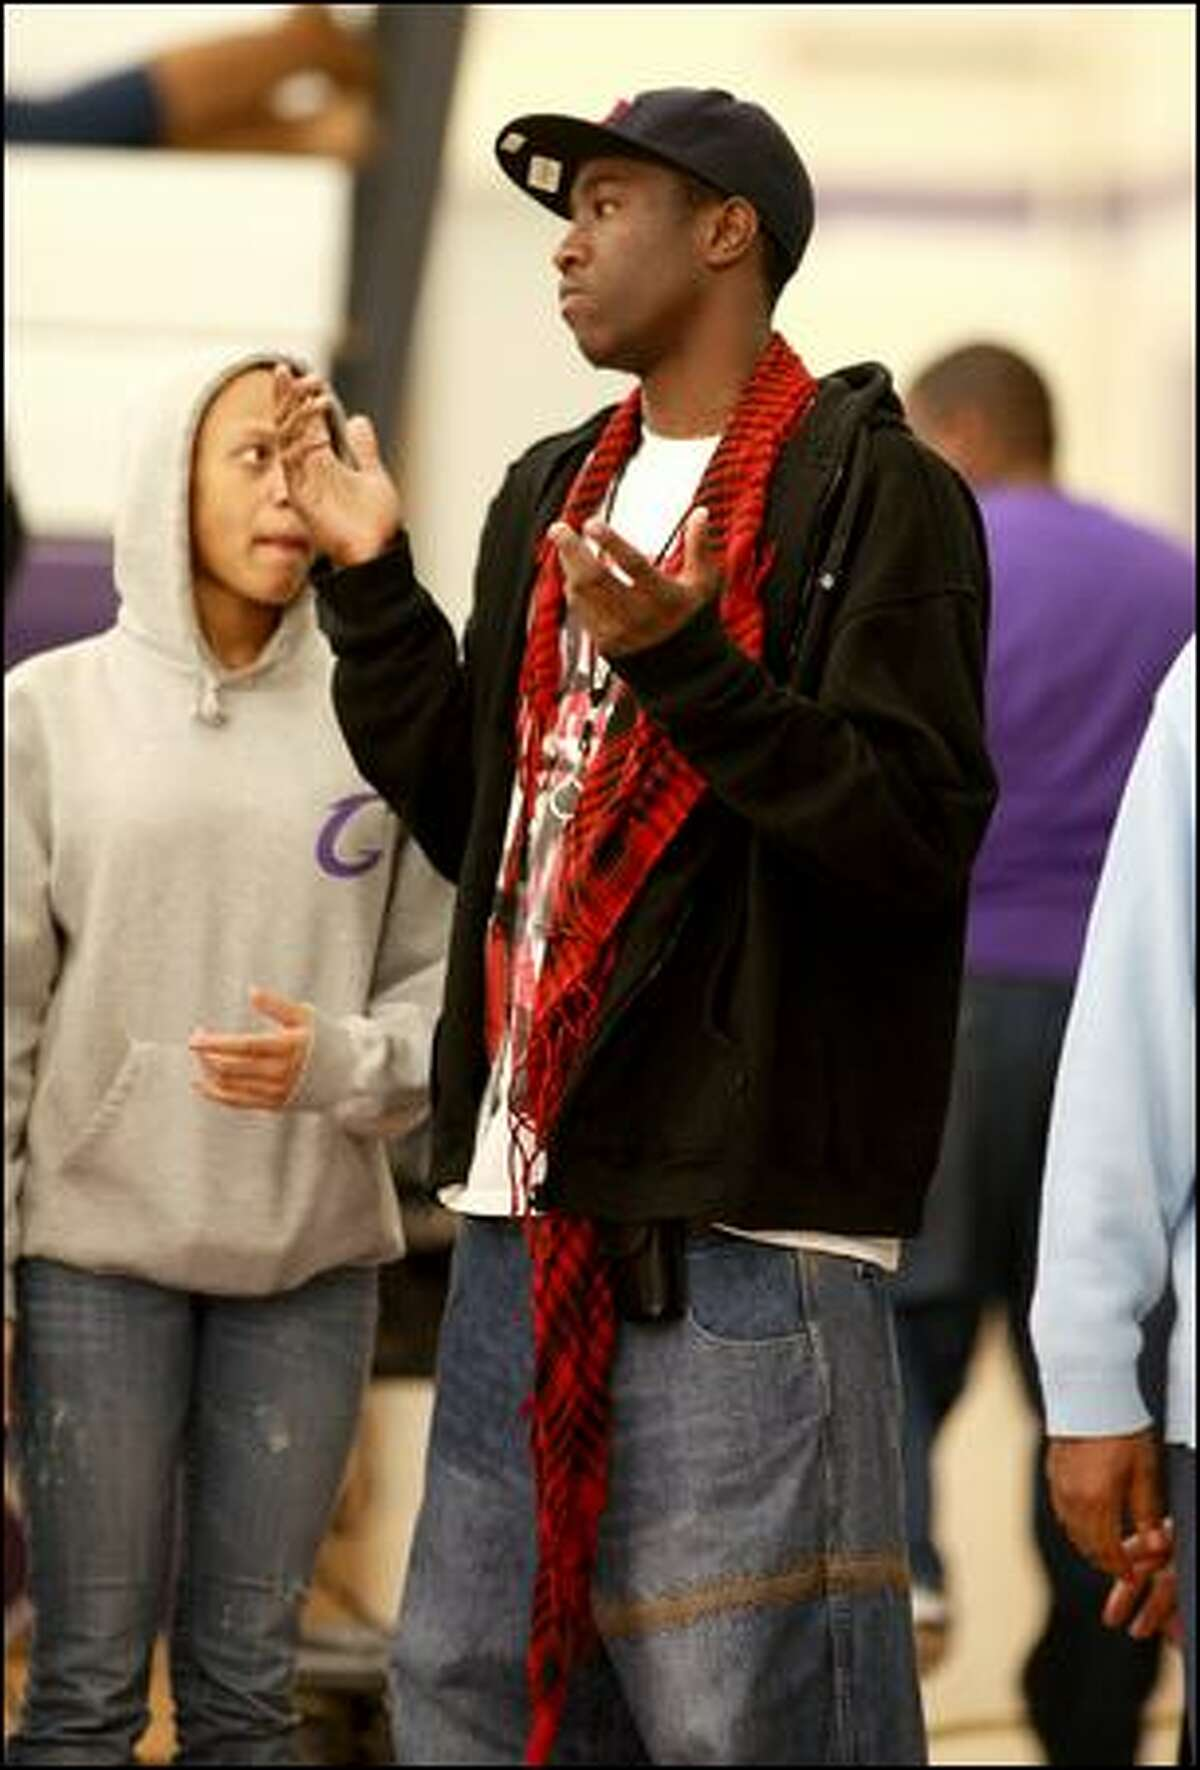 Tony Wroten Jr. talks to supporters at the Garfield-Issaquah game Friday. Wroten hasn't played this season.